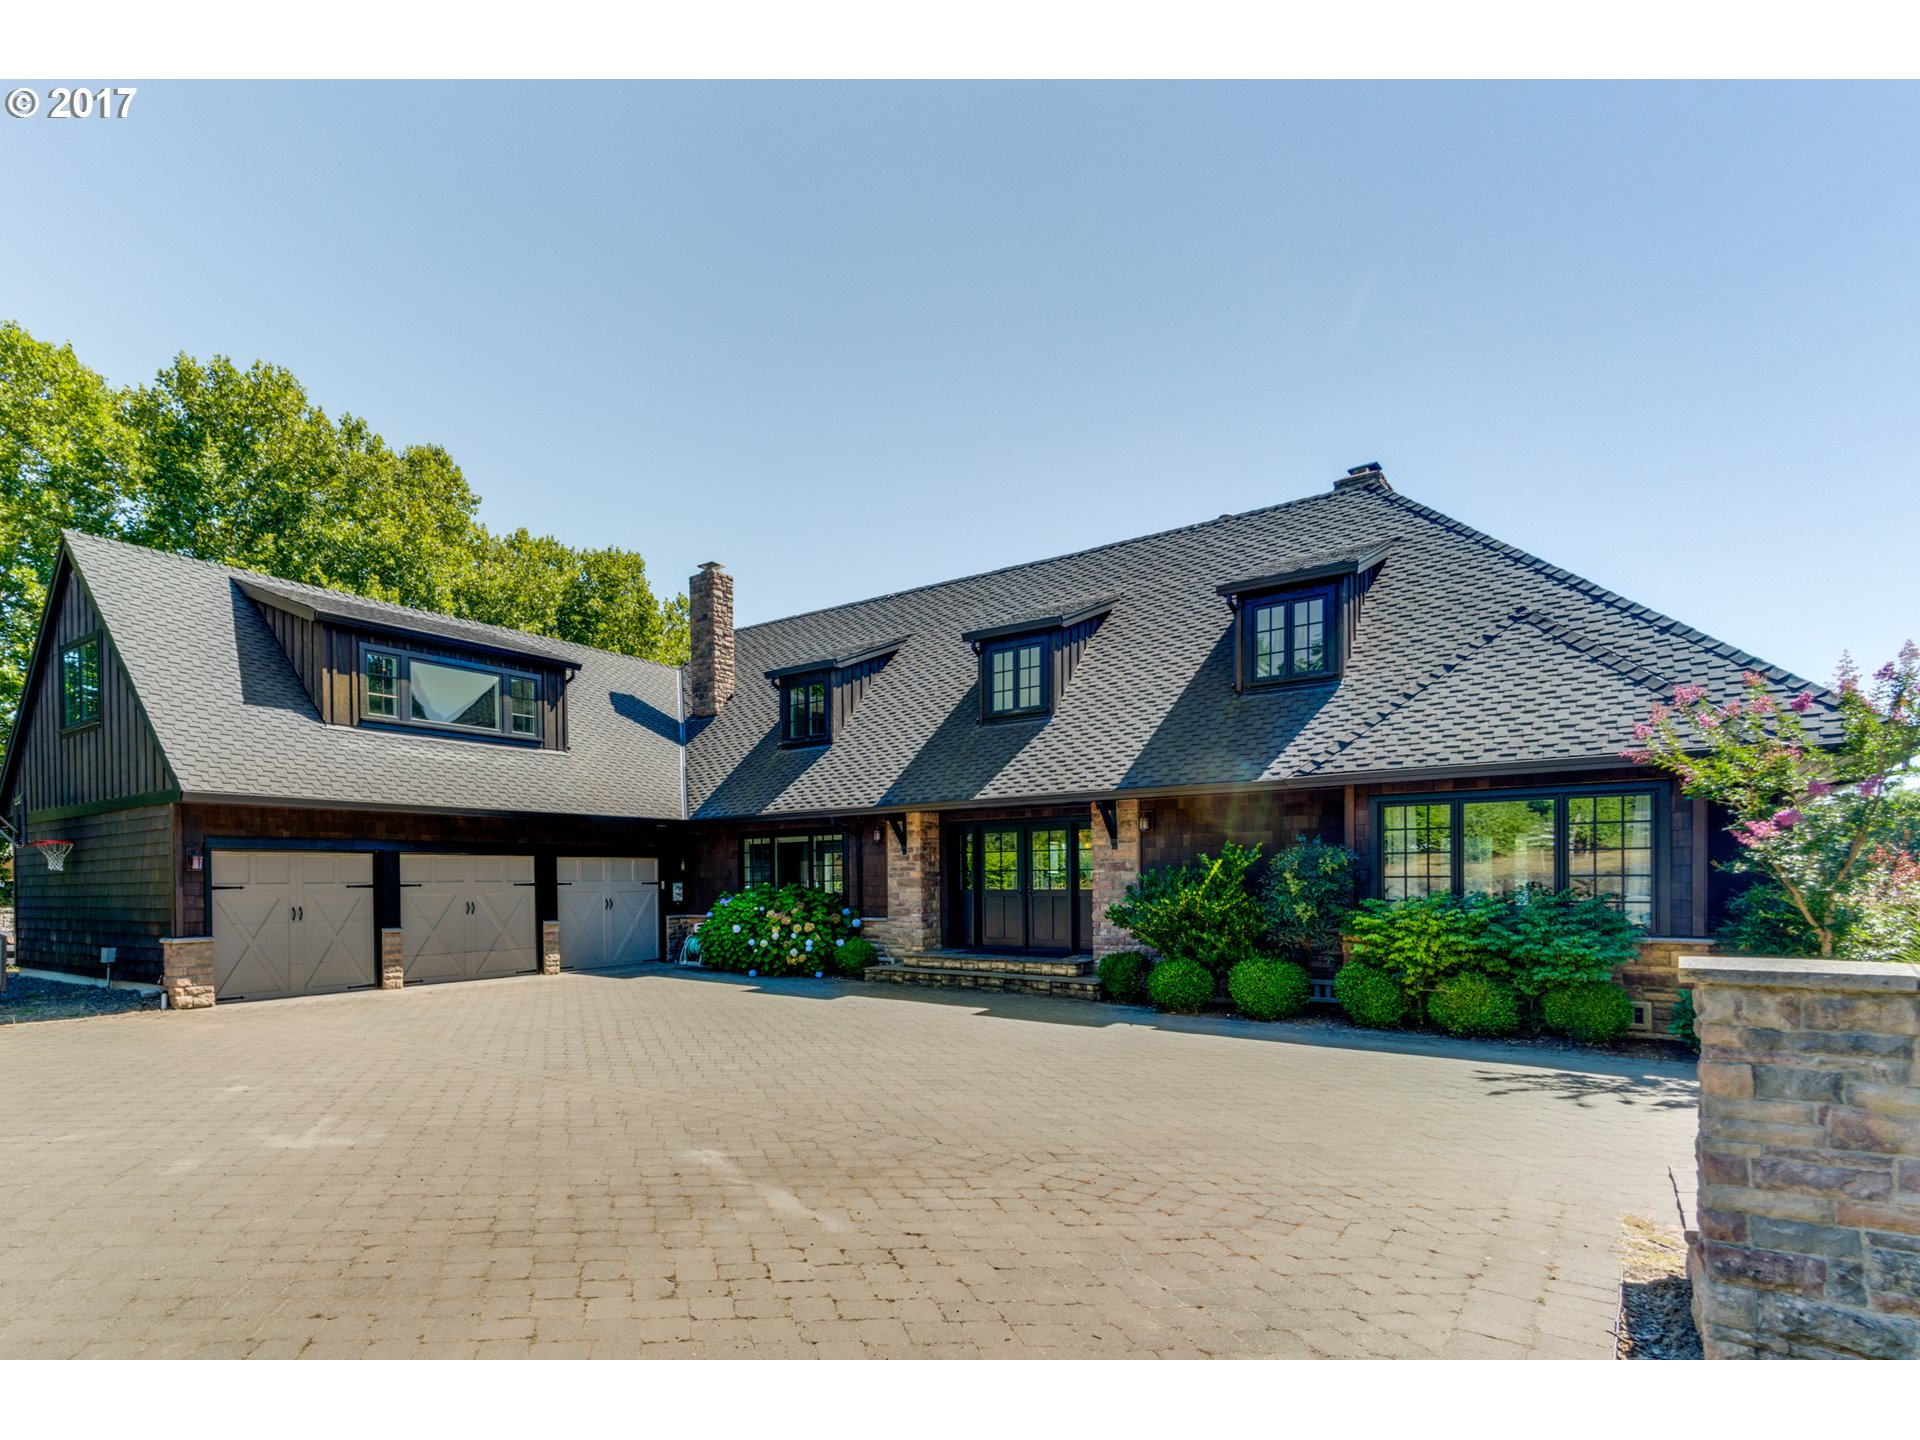 2160 CHILDS RD, Lake Oswego, OR 97034